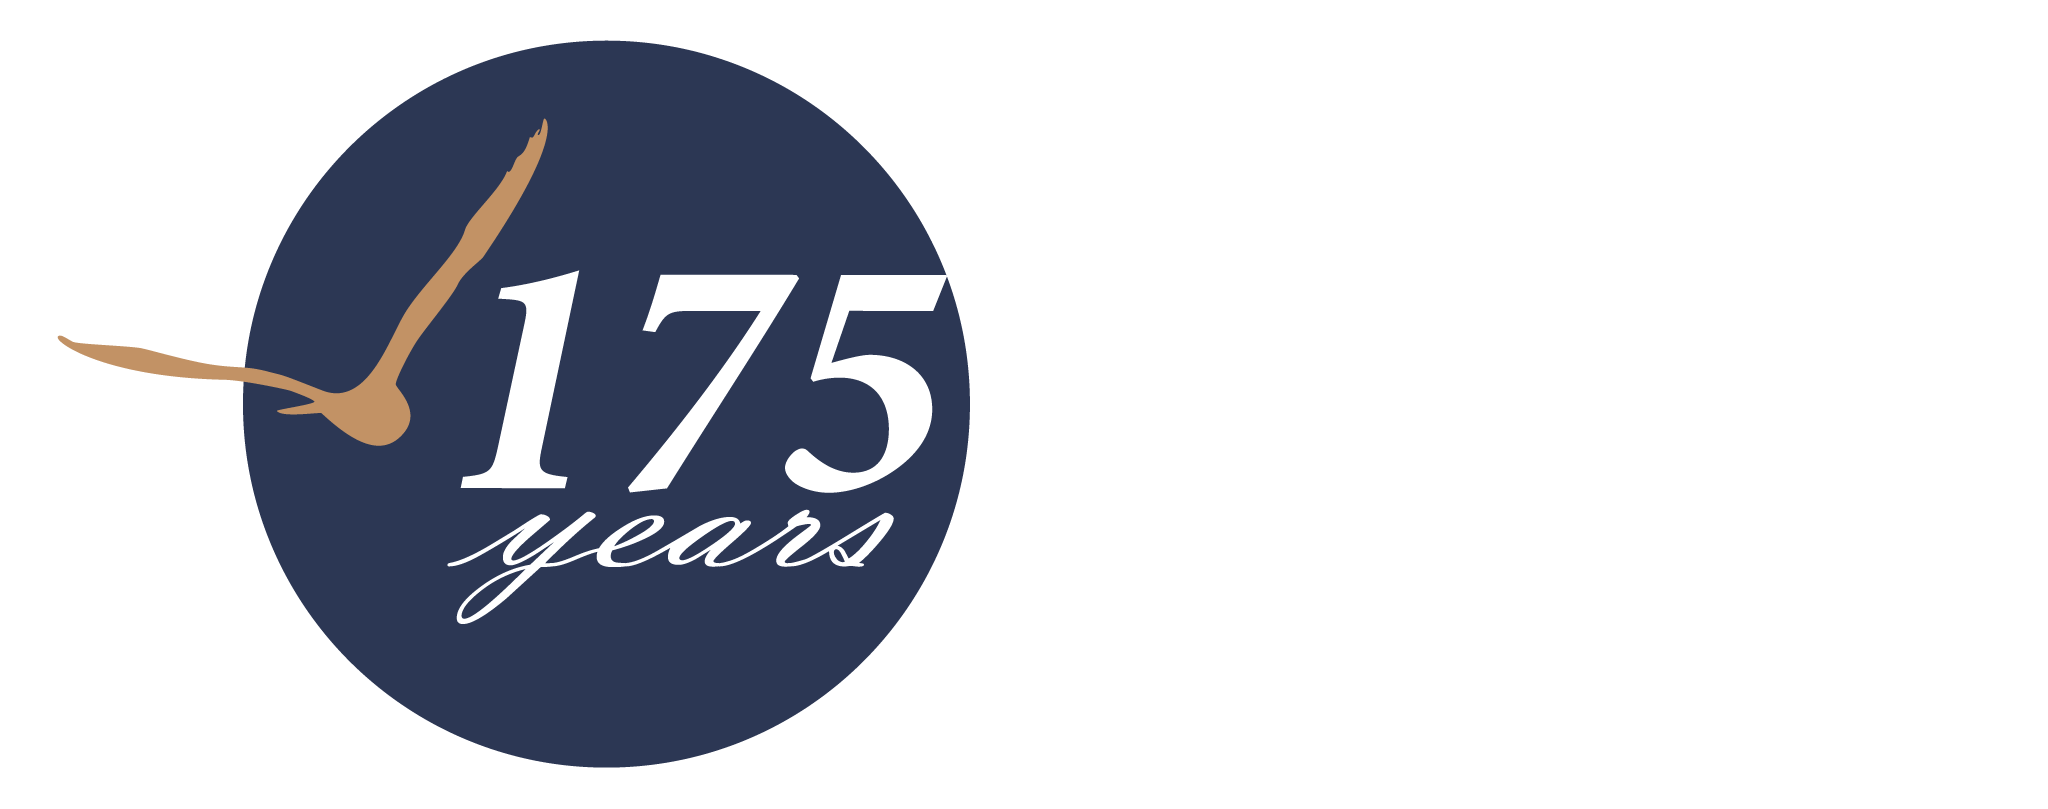 175 Years. Ingham Medical Care Facility